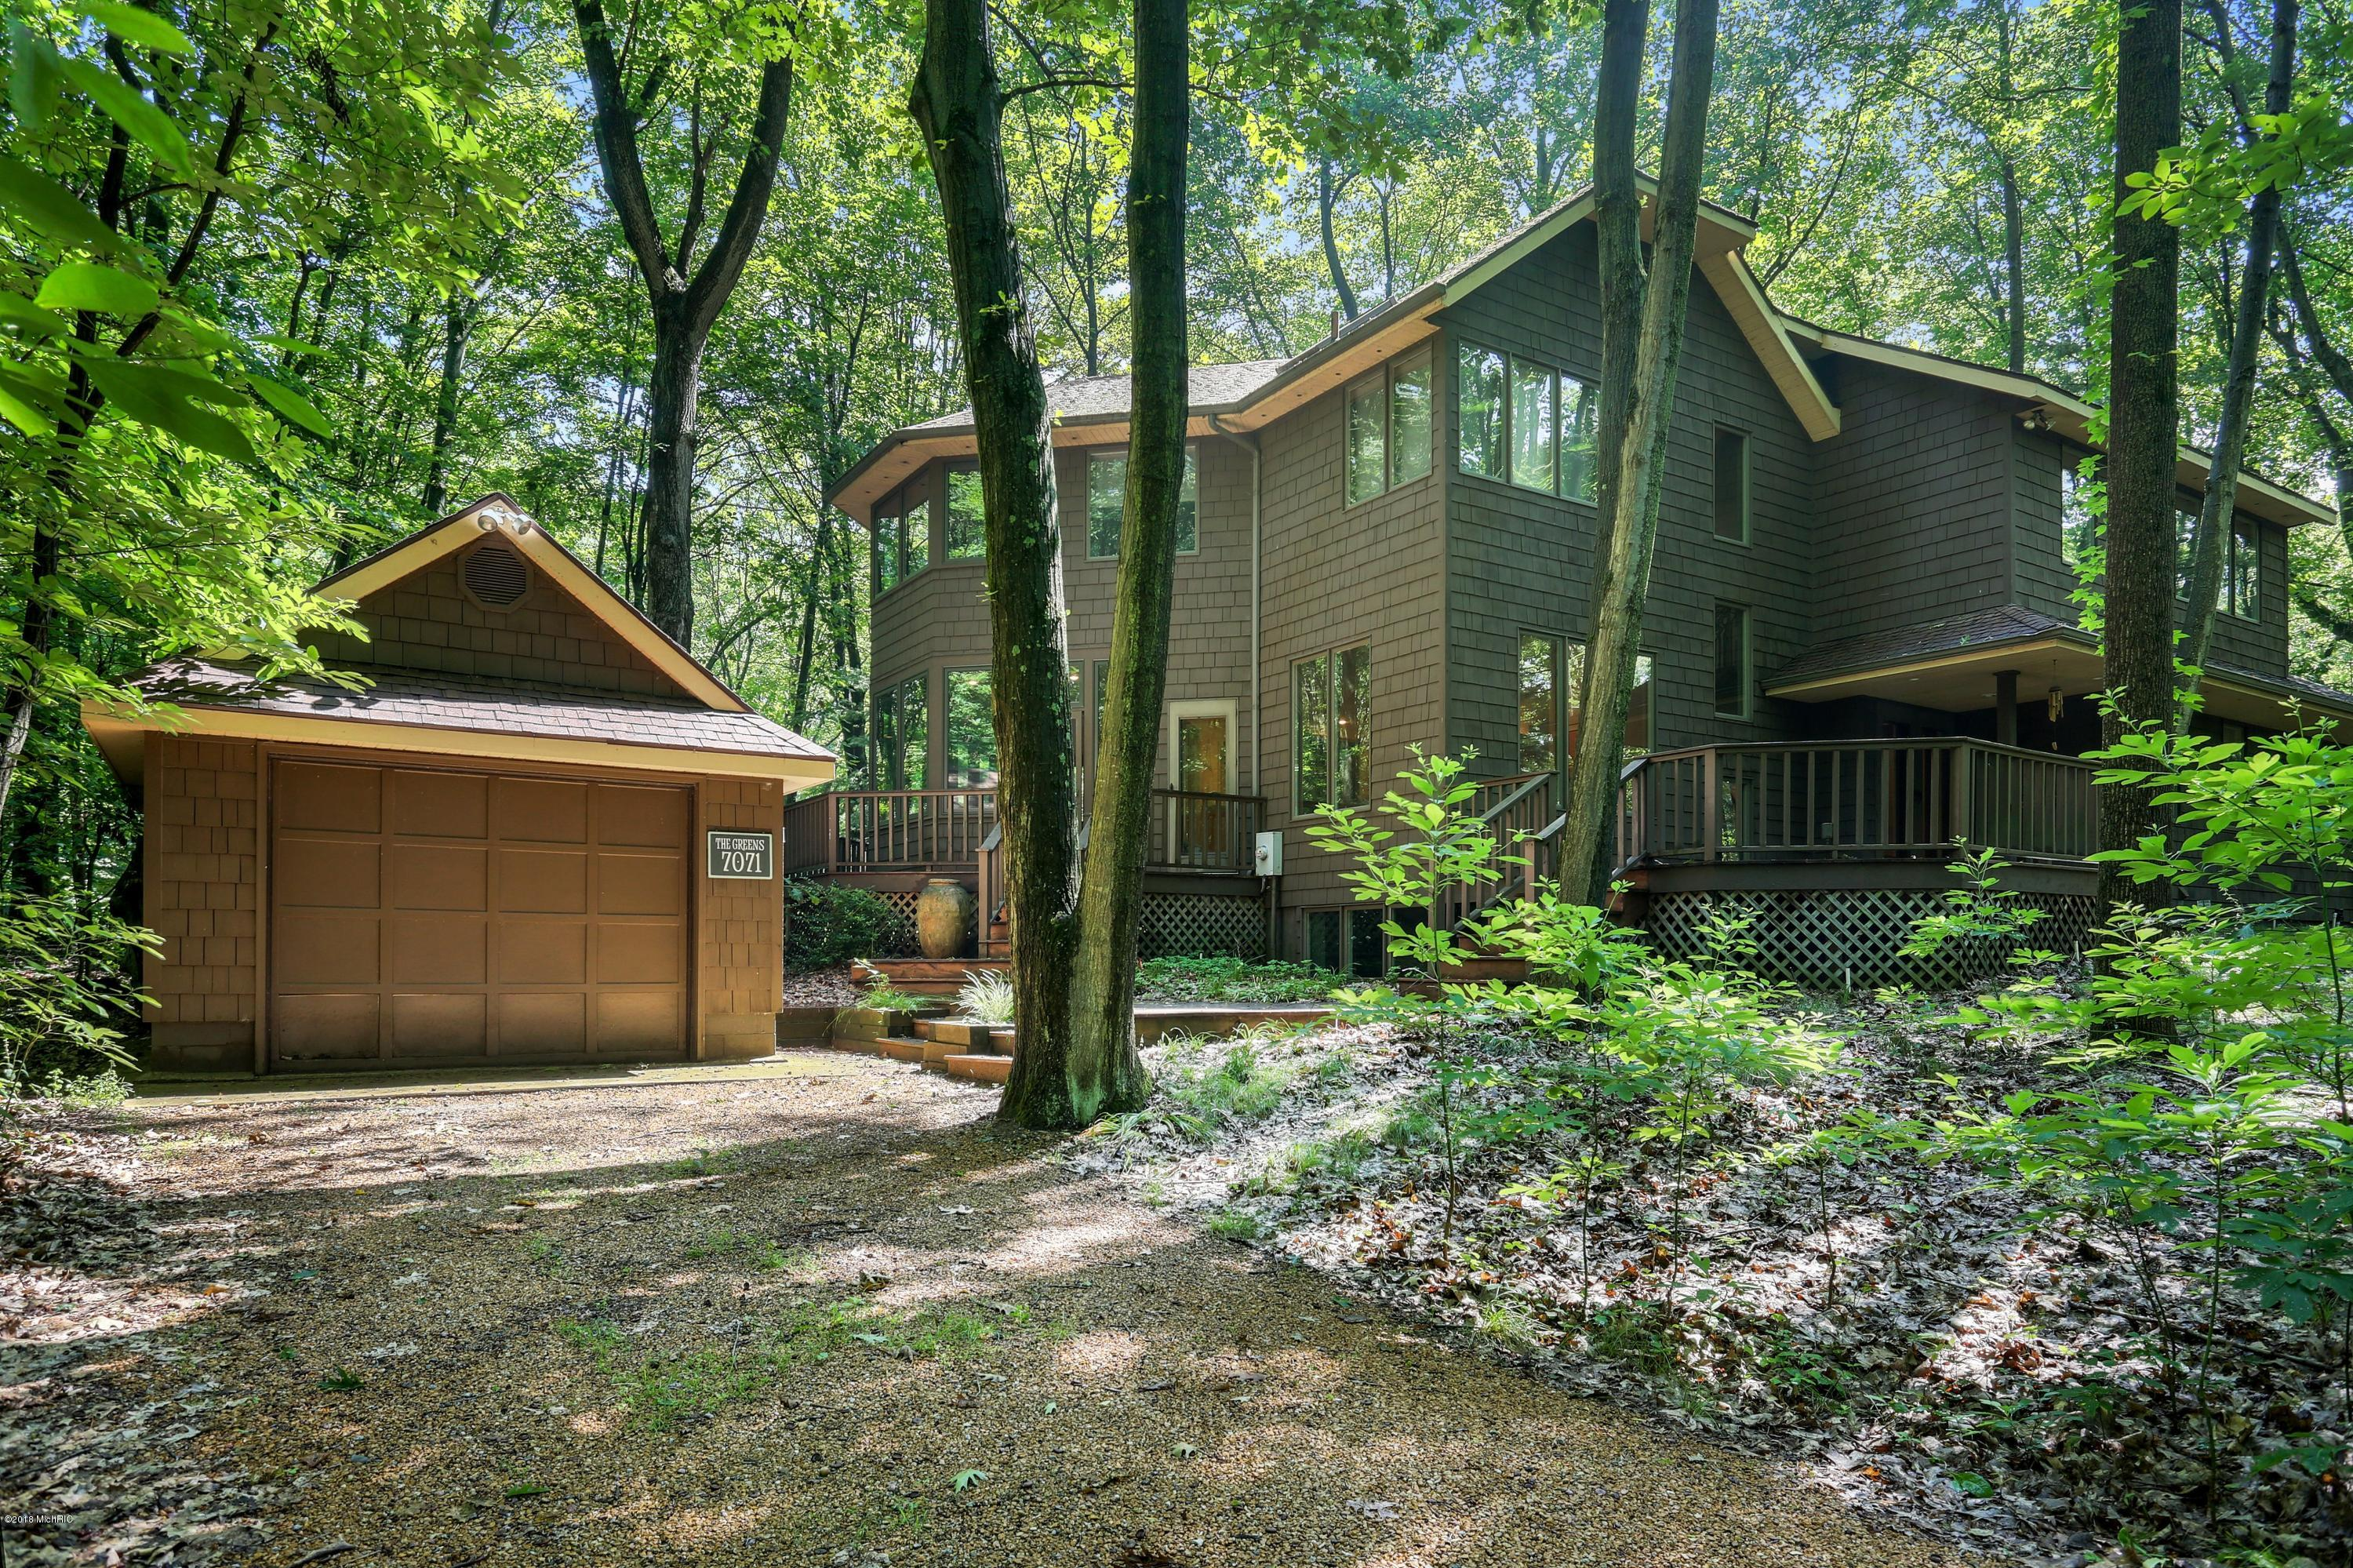 7071 TIBBERON LANE, SAWYER, MI 49125